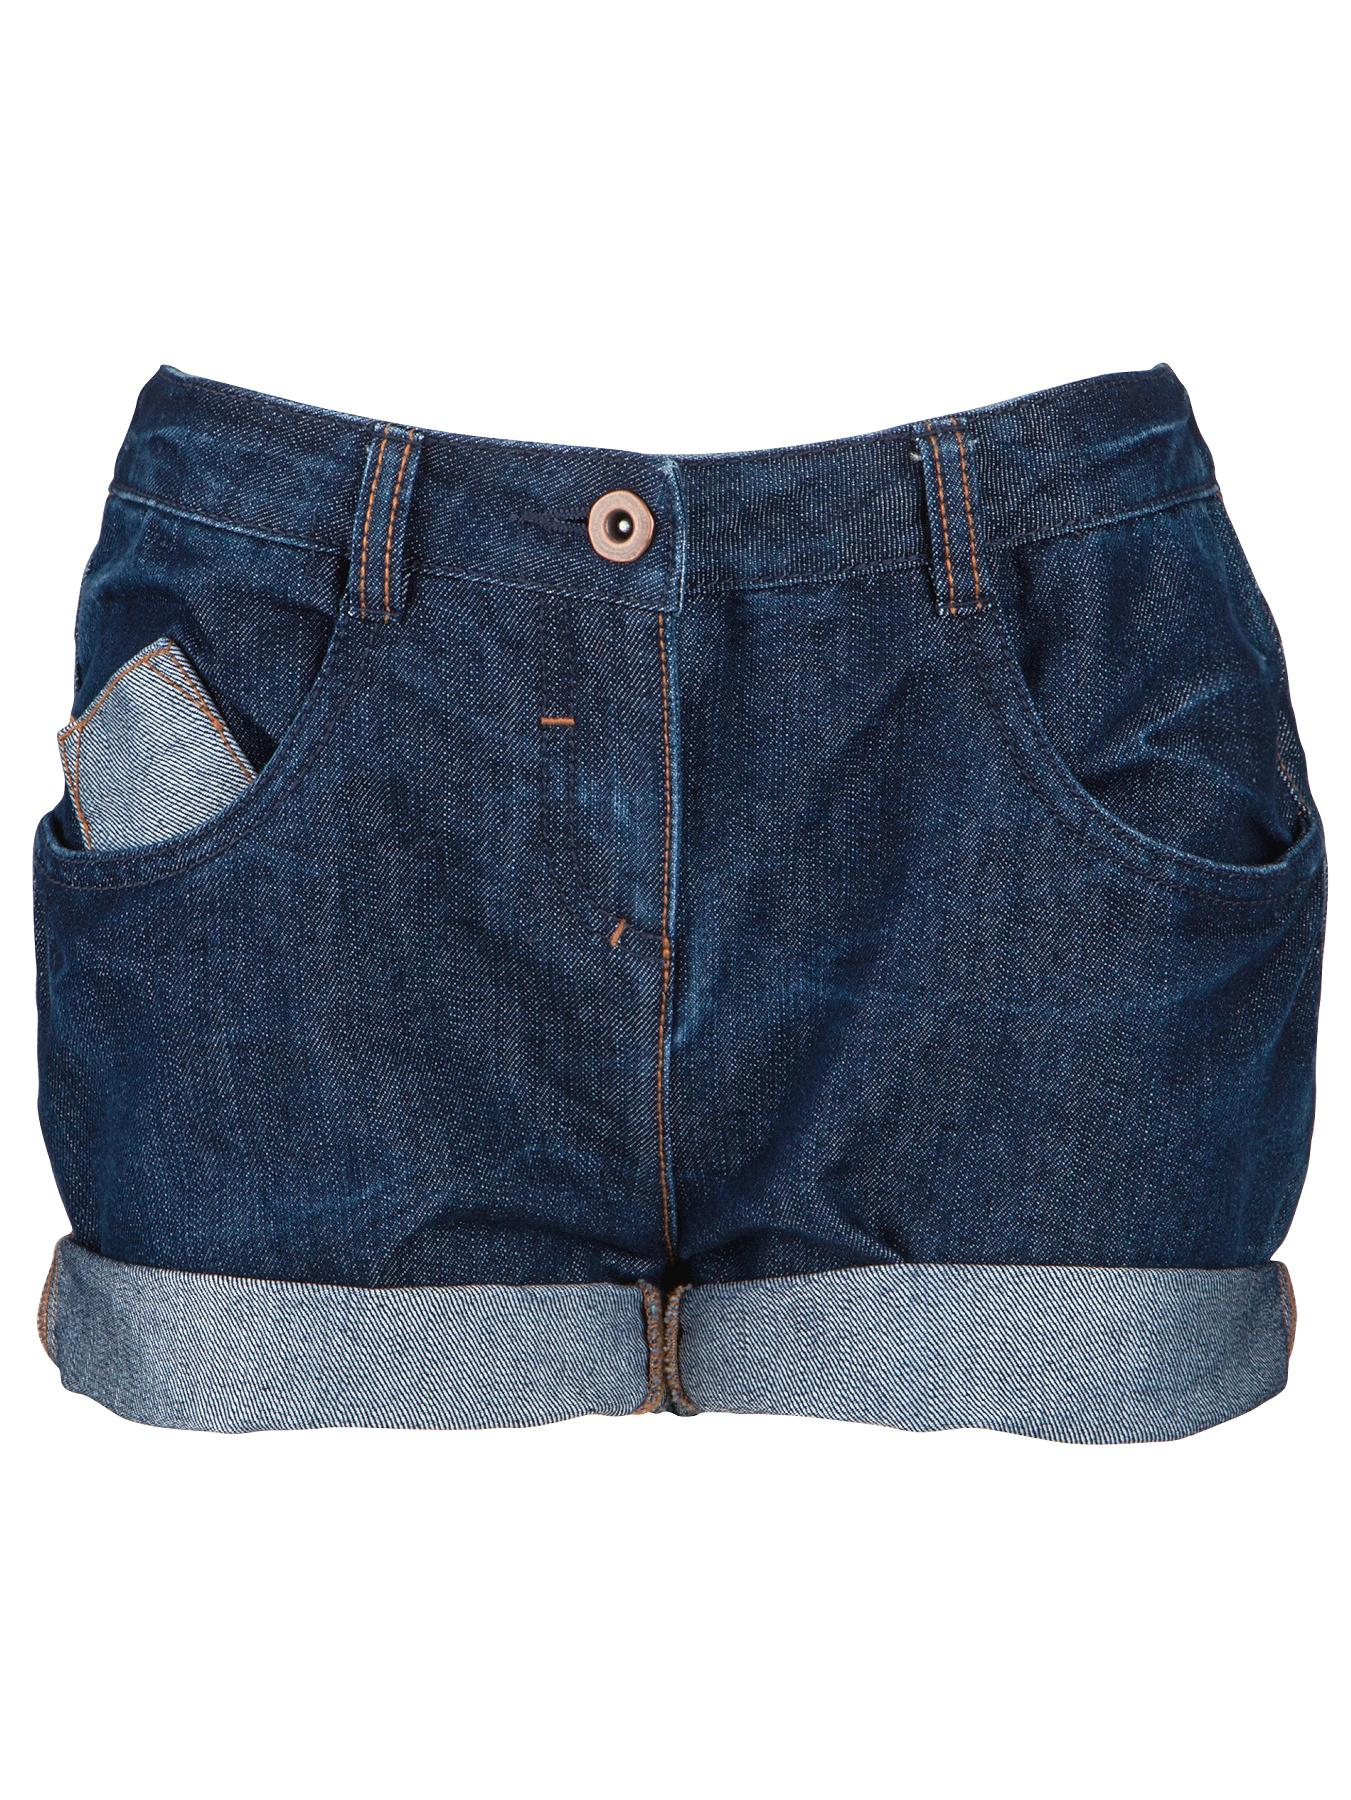 Freespirit Girls Denim Shorts